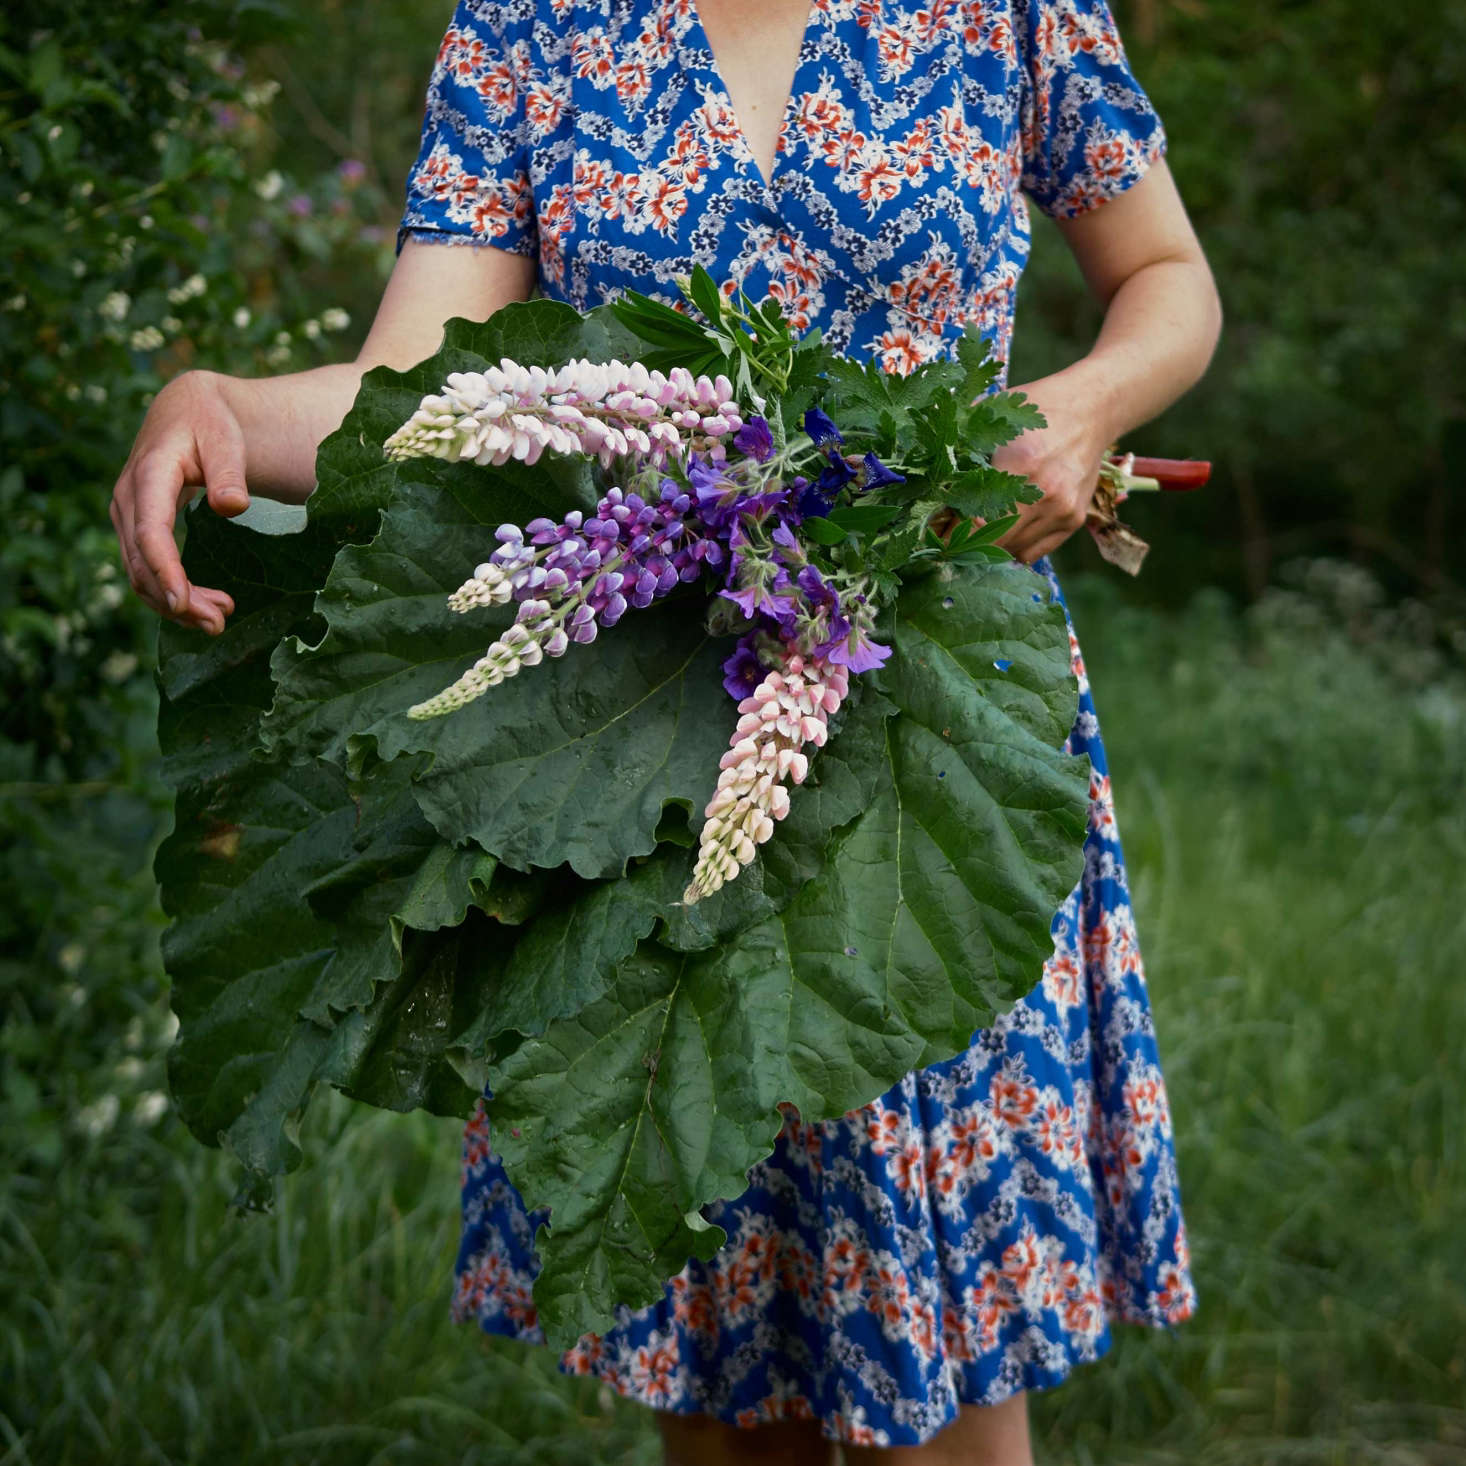 #onebouquetperday with blue geranium, lupine, and iris, plus ingredients for a rhubarb pie to share with neighbors.